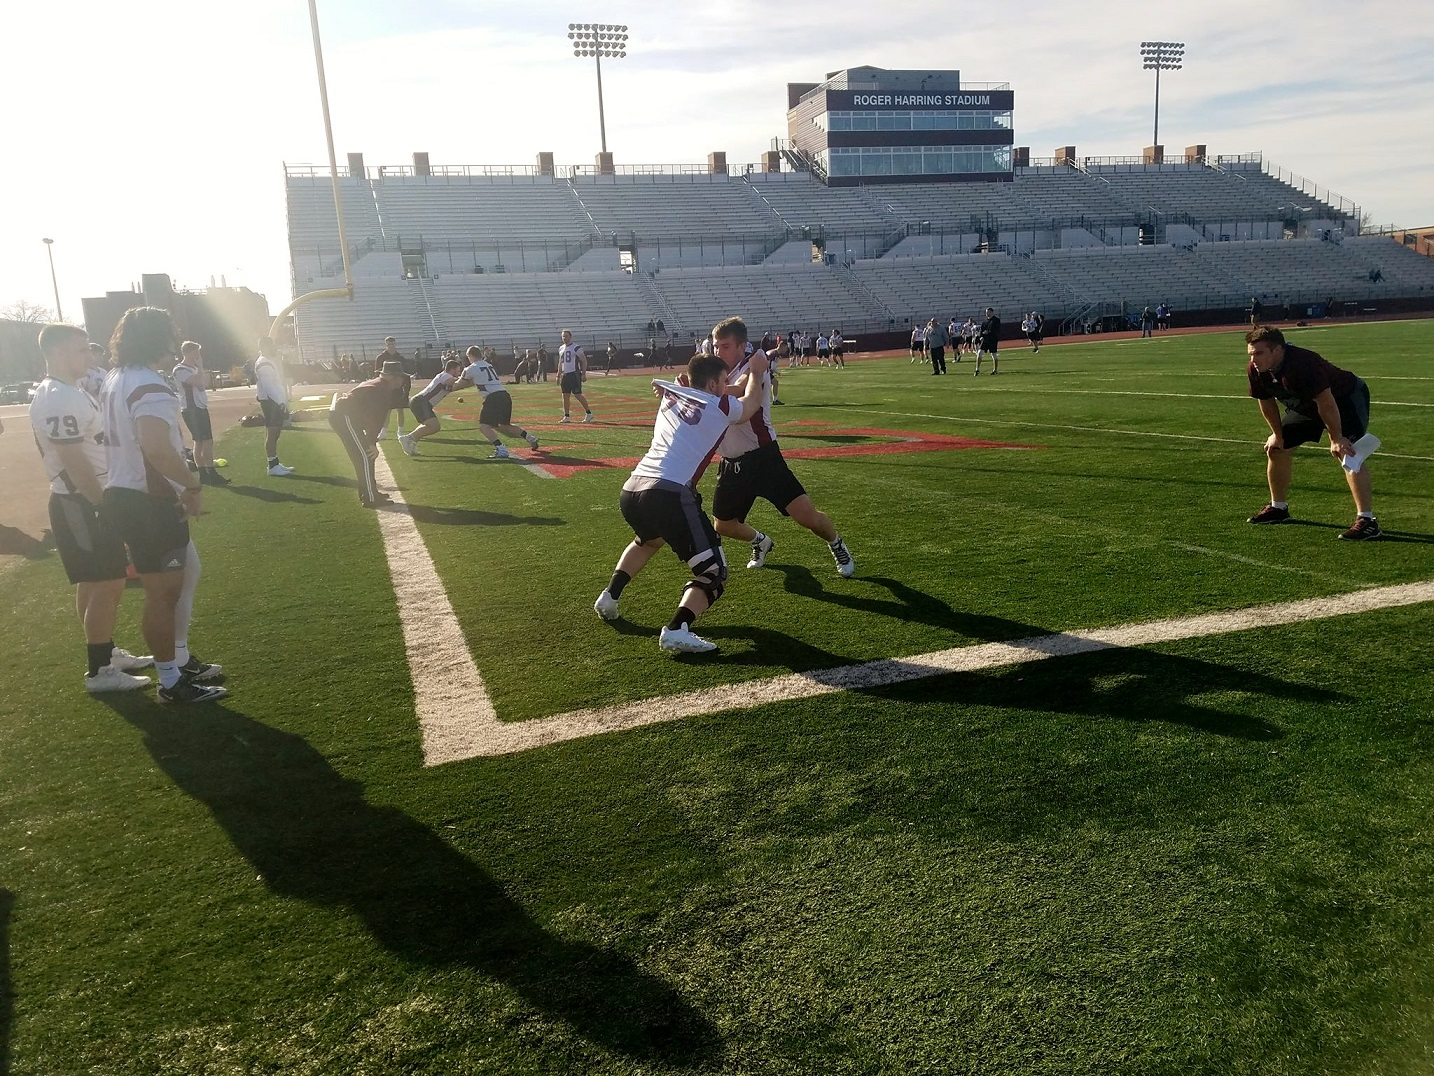 UW-L setting high expectations for itself as spring football gets underway